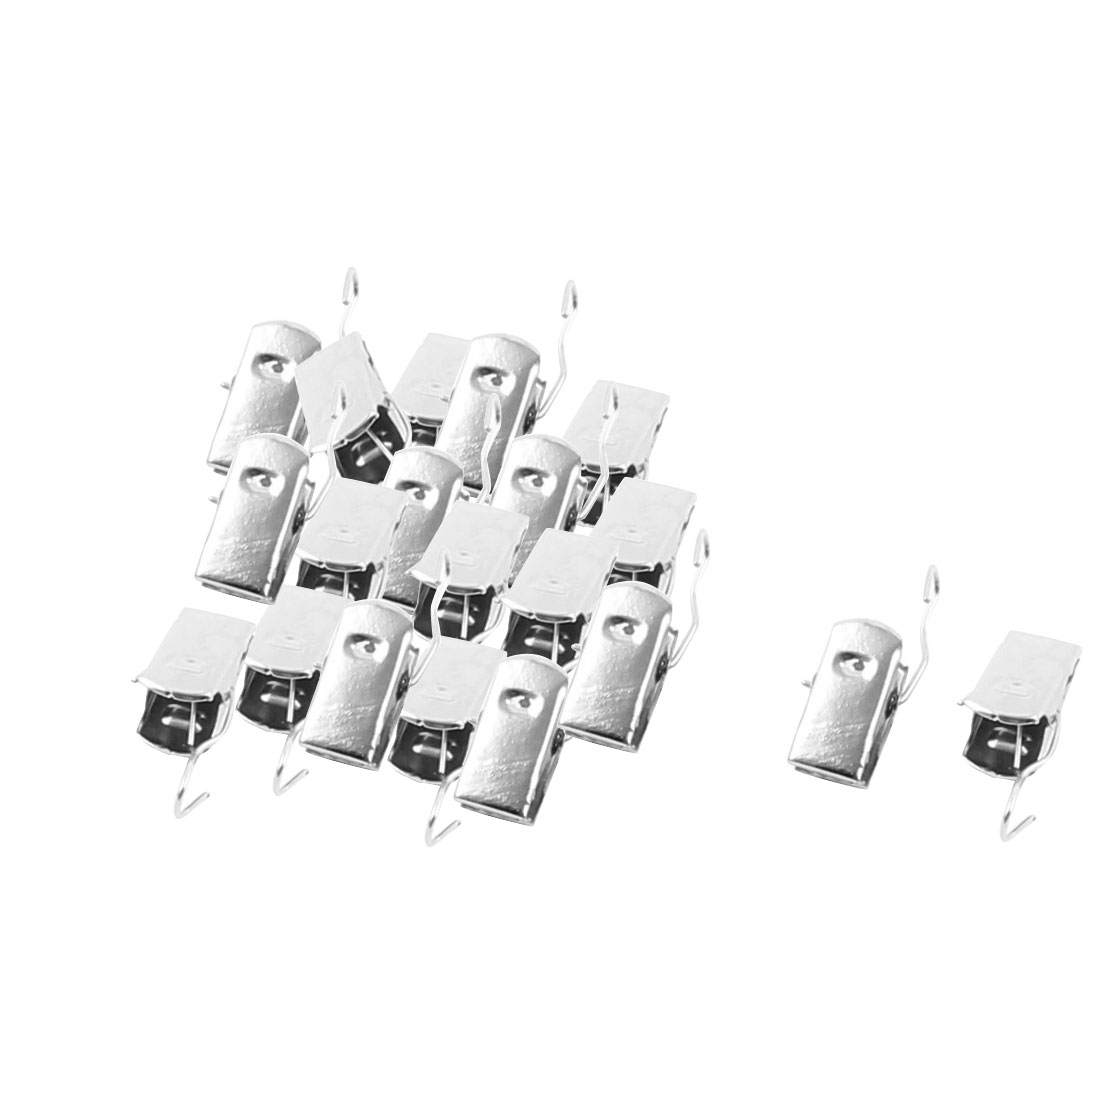 Drapery Window Shower Curtain Rod Metal Spring Loaded Hook Clips Clamps 20pcs